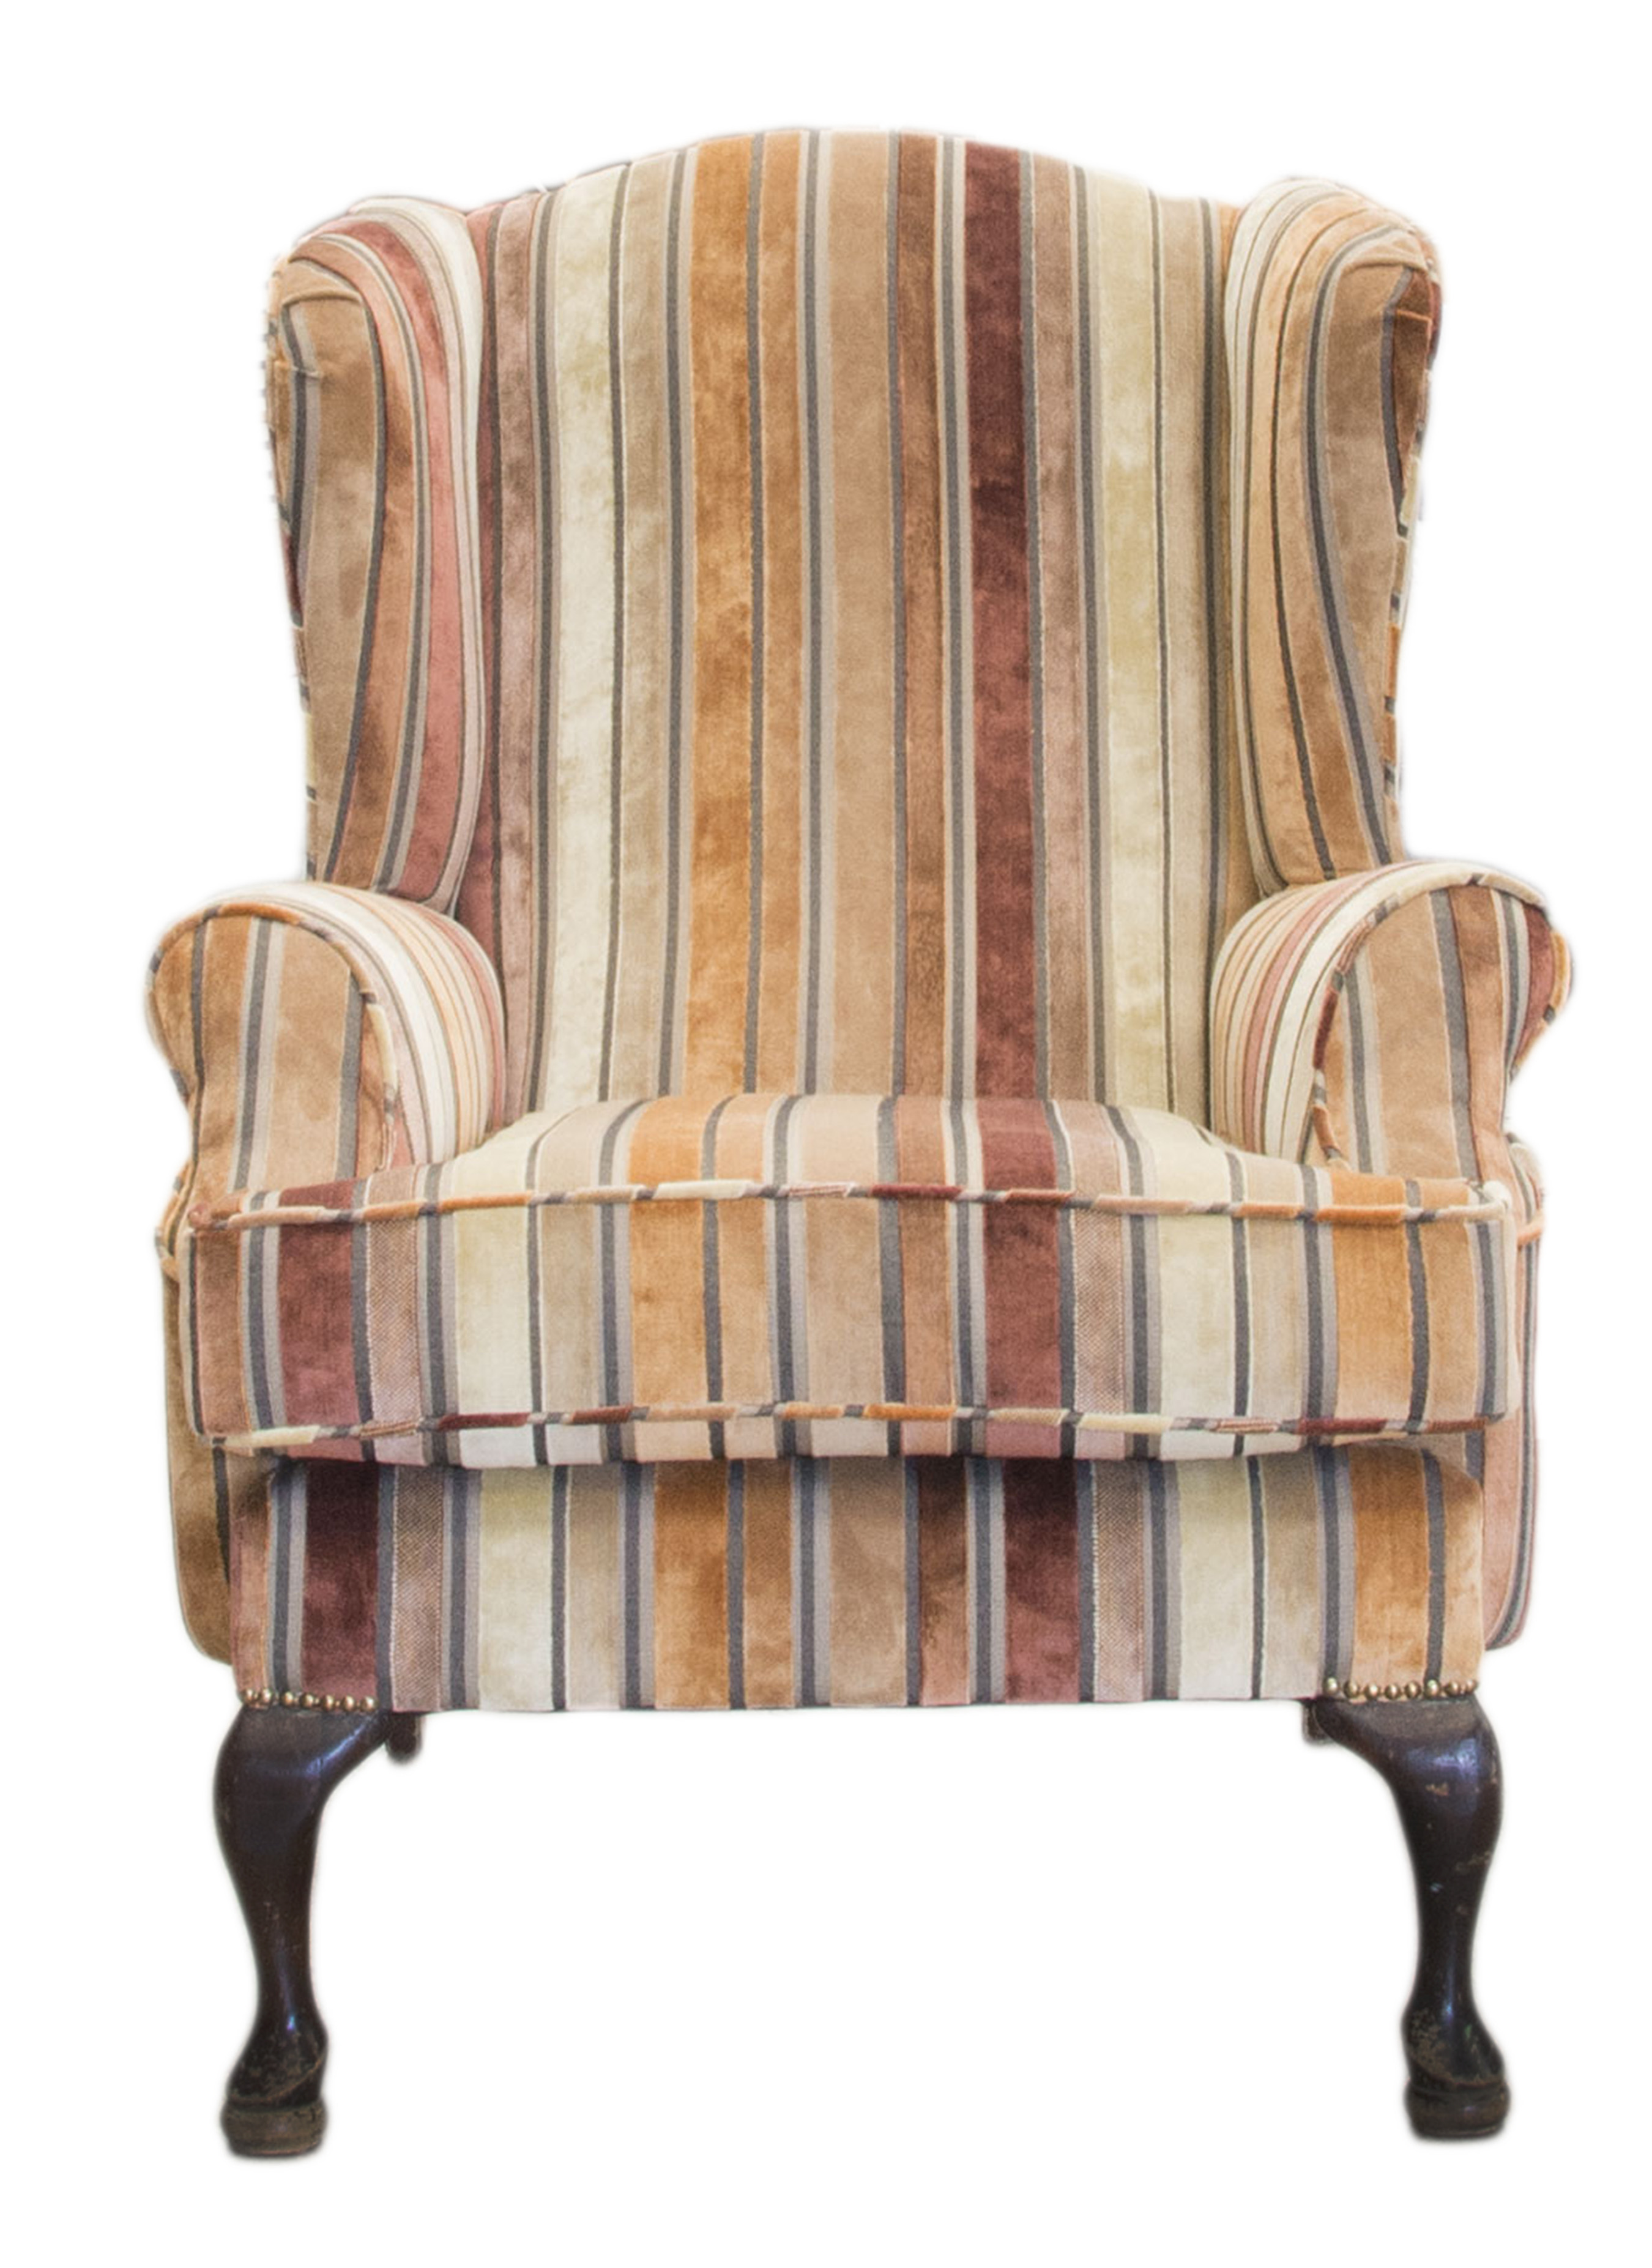 Queen Anne Chair After